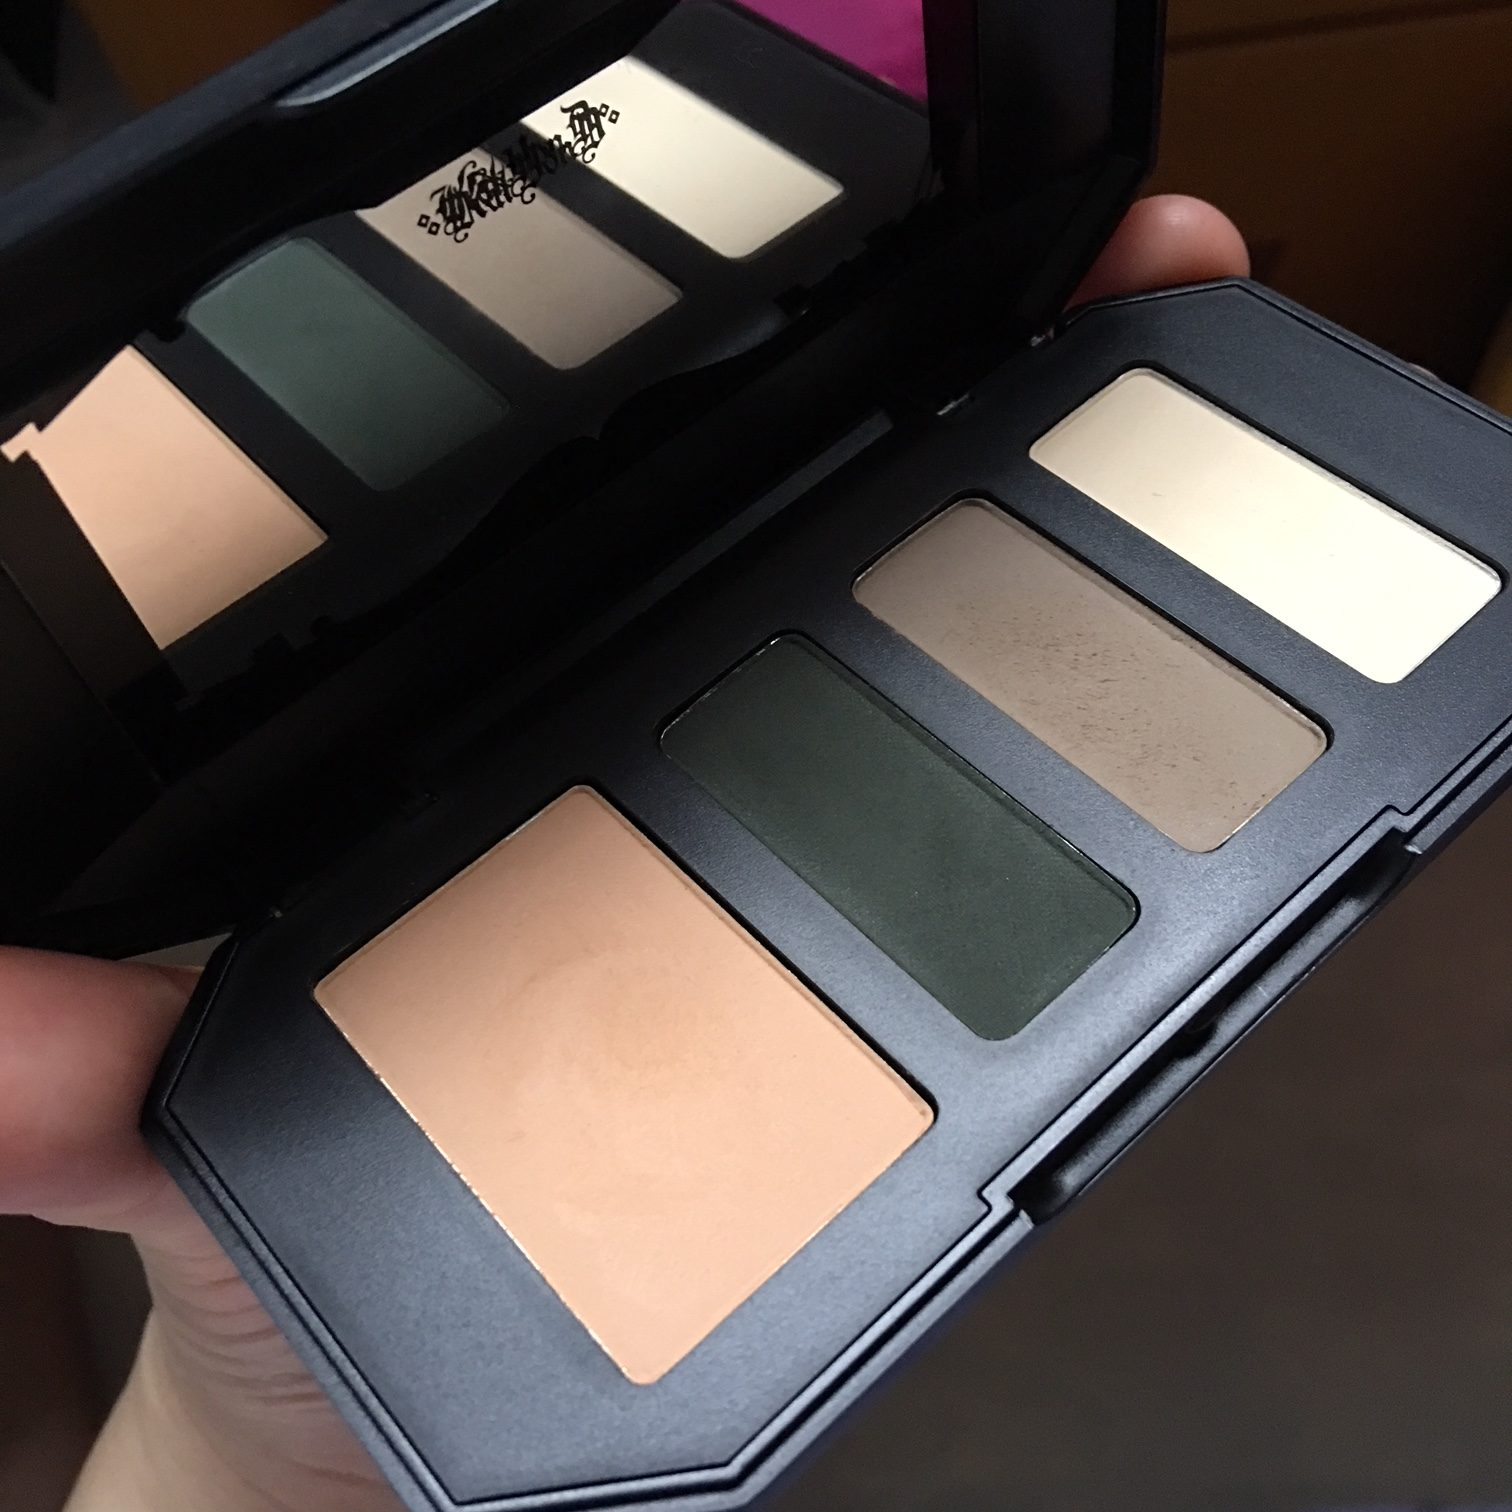 Kat Von D Shade and Light Eye Contour Quad + Studded Kiss Lipstick Review